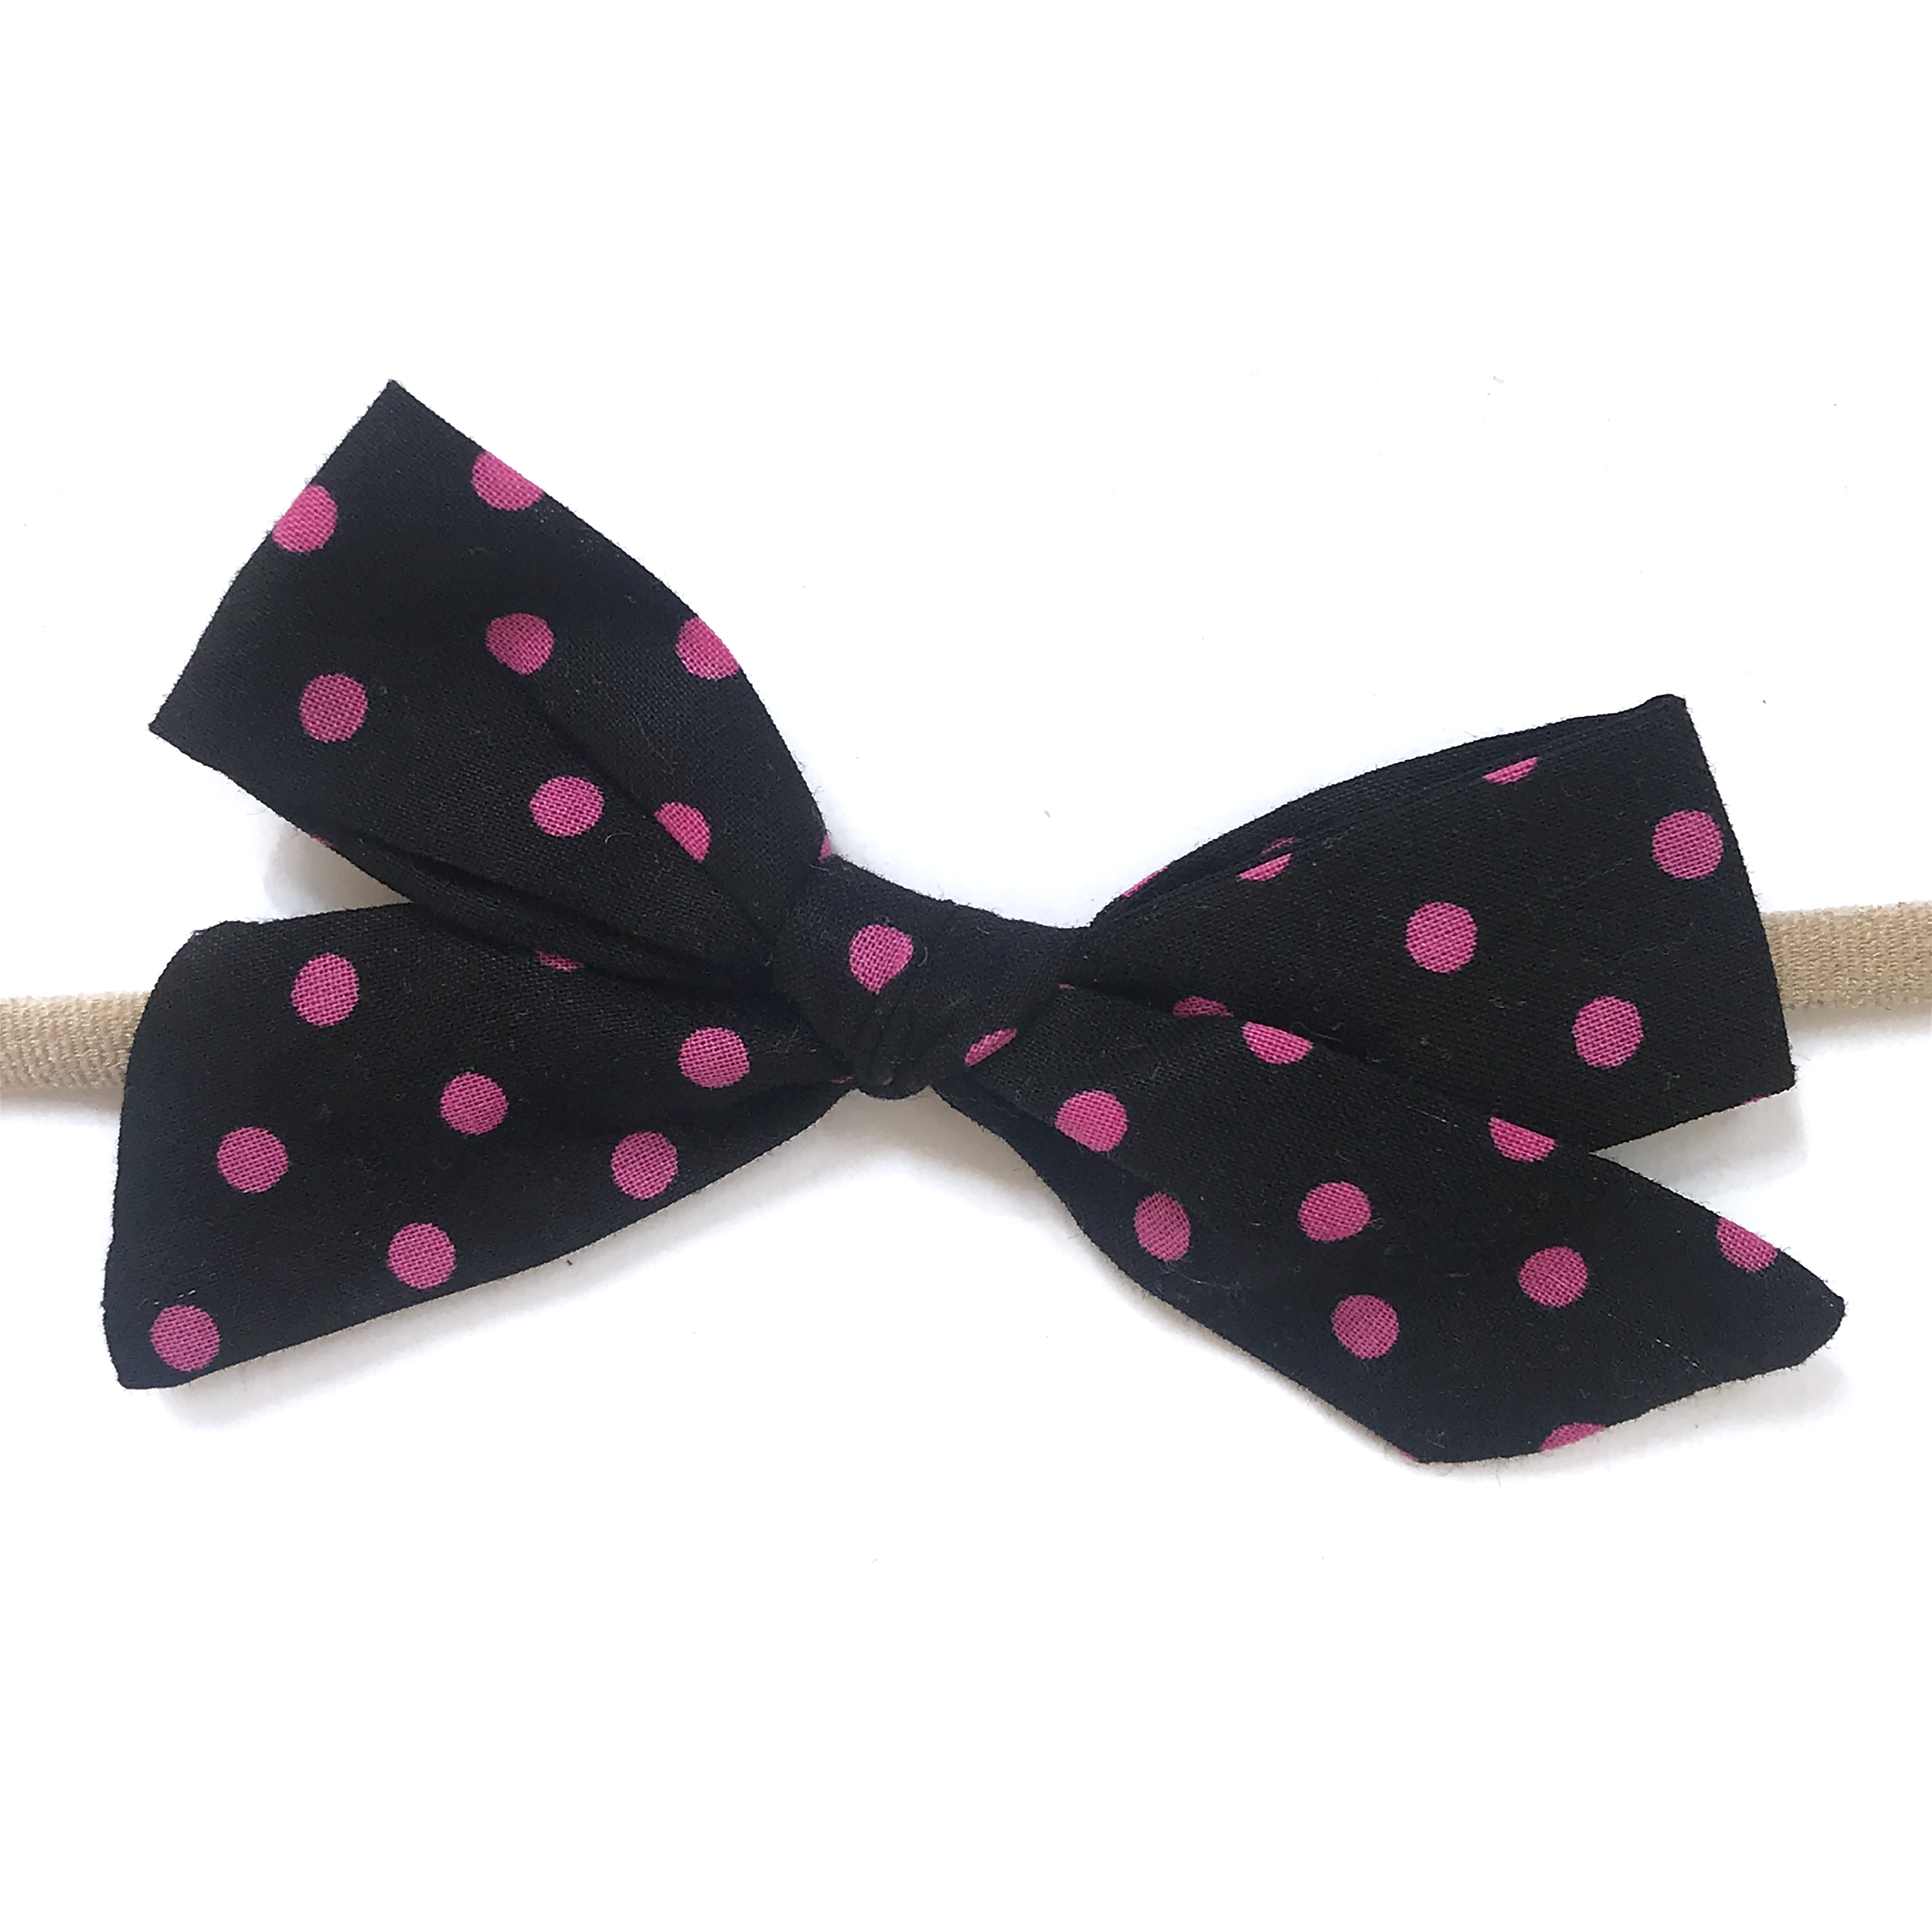 Petite Hand-Tied Bow -Black with Hot Pink Dots